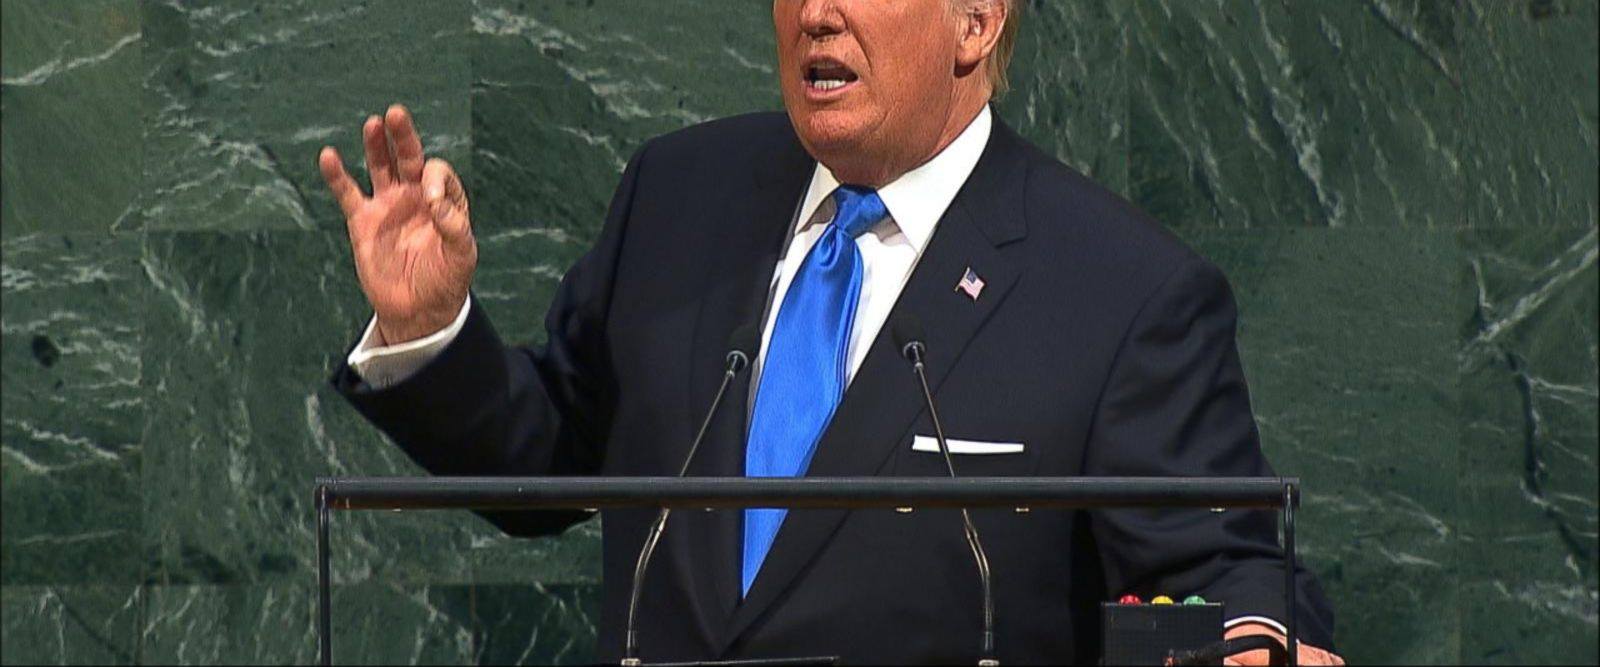 VIDEO: Trump vows to 'totally destroy North Korea' at UN assembly